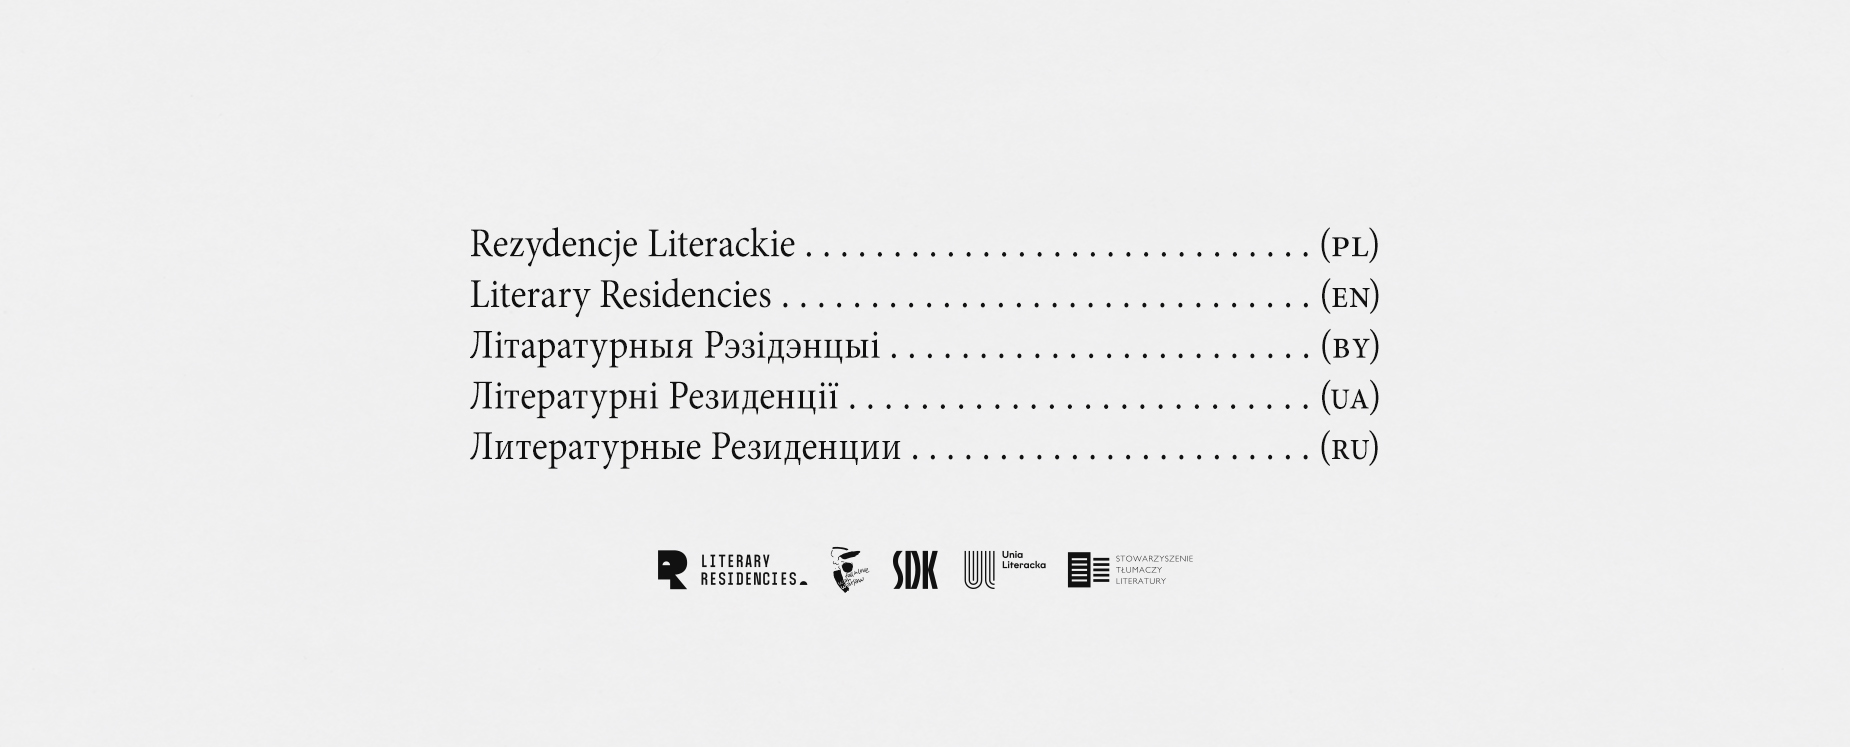 1 obraz w galerii artykułu RESULTS OF AN OPEN CALL FOR LITERARY RESIDENCES